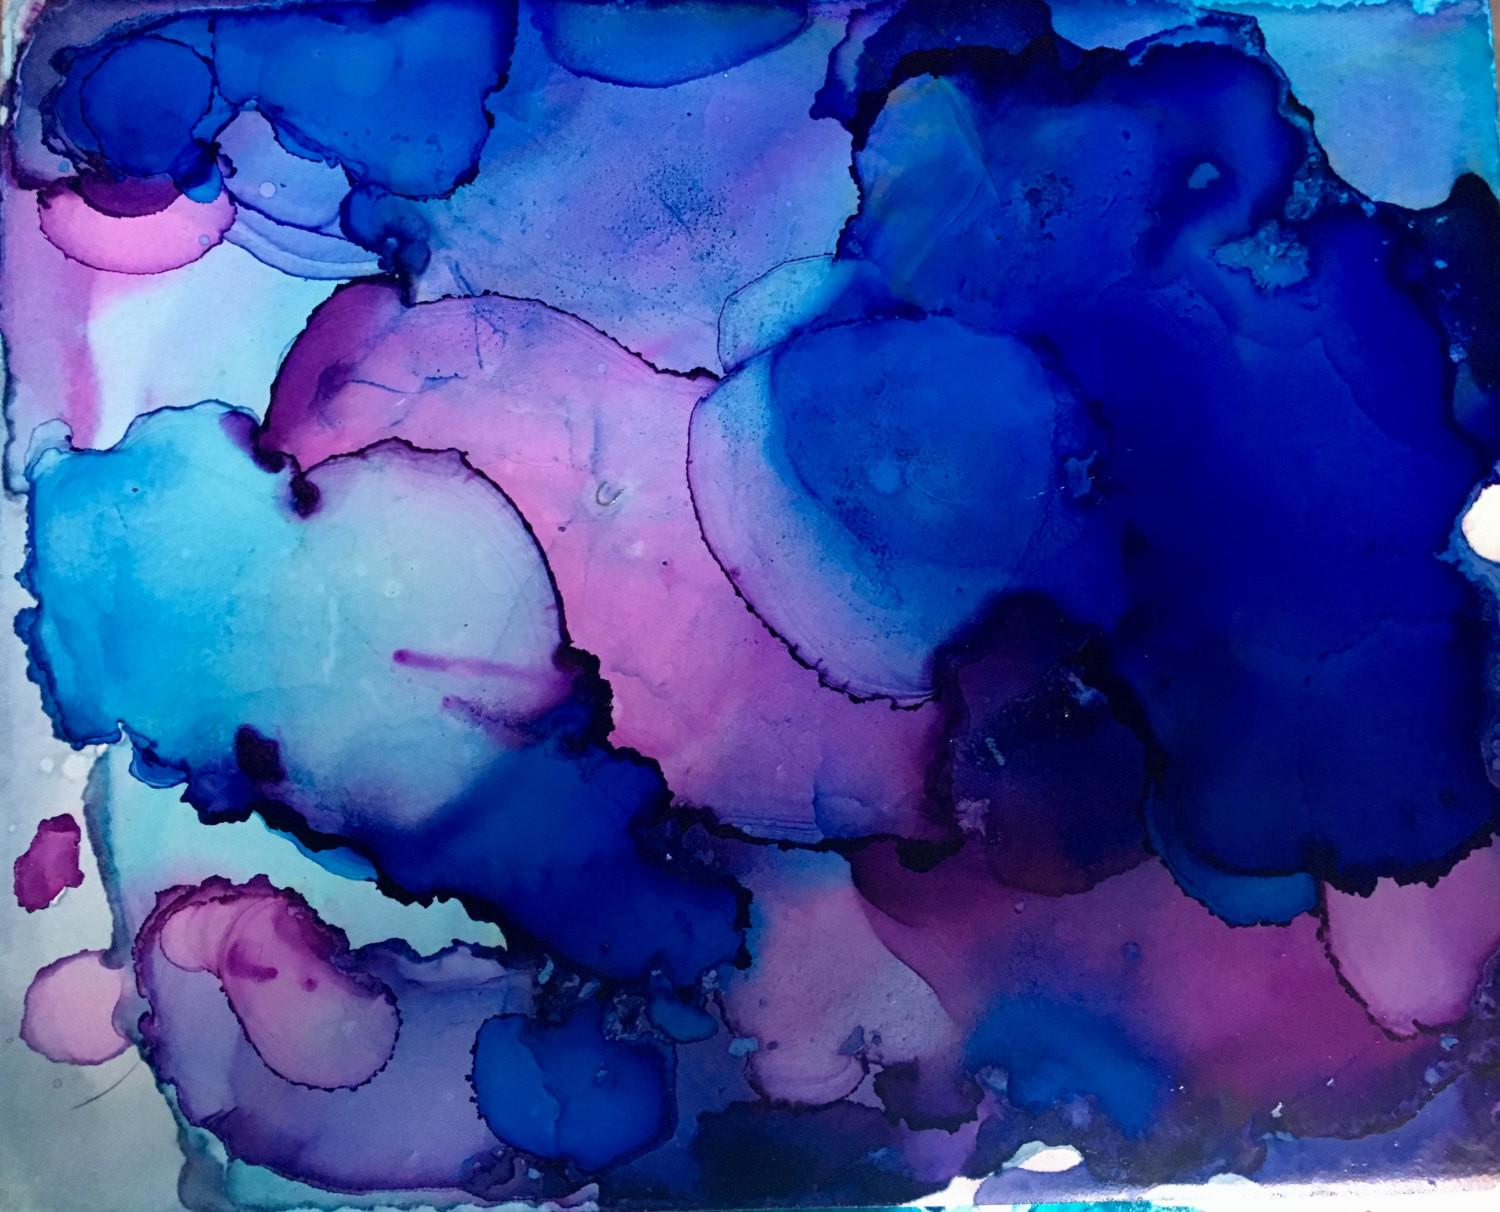 Medium Abstract Alcohol Ink Painting Colorful One Kind